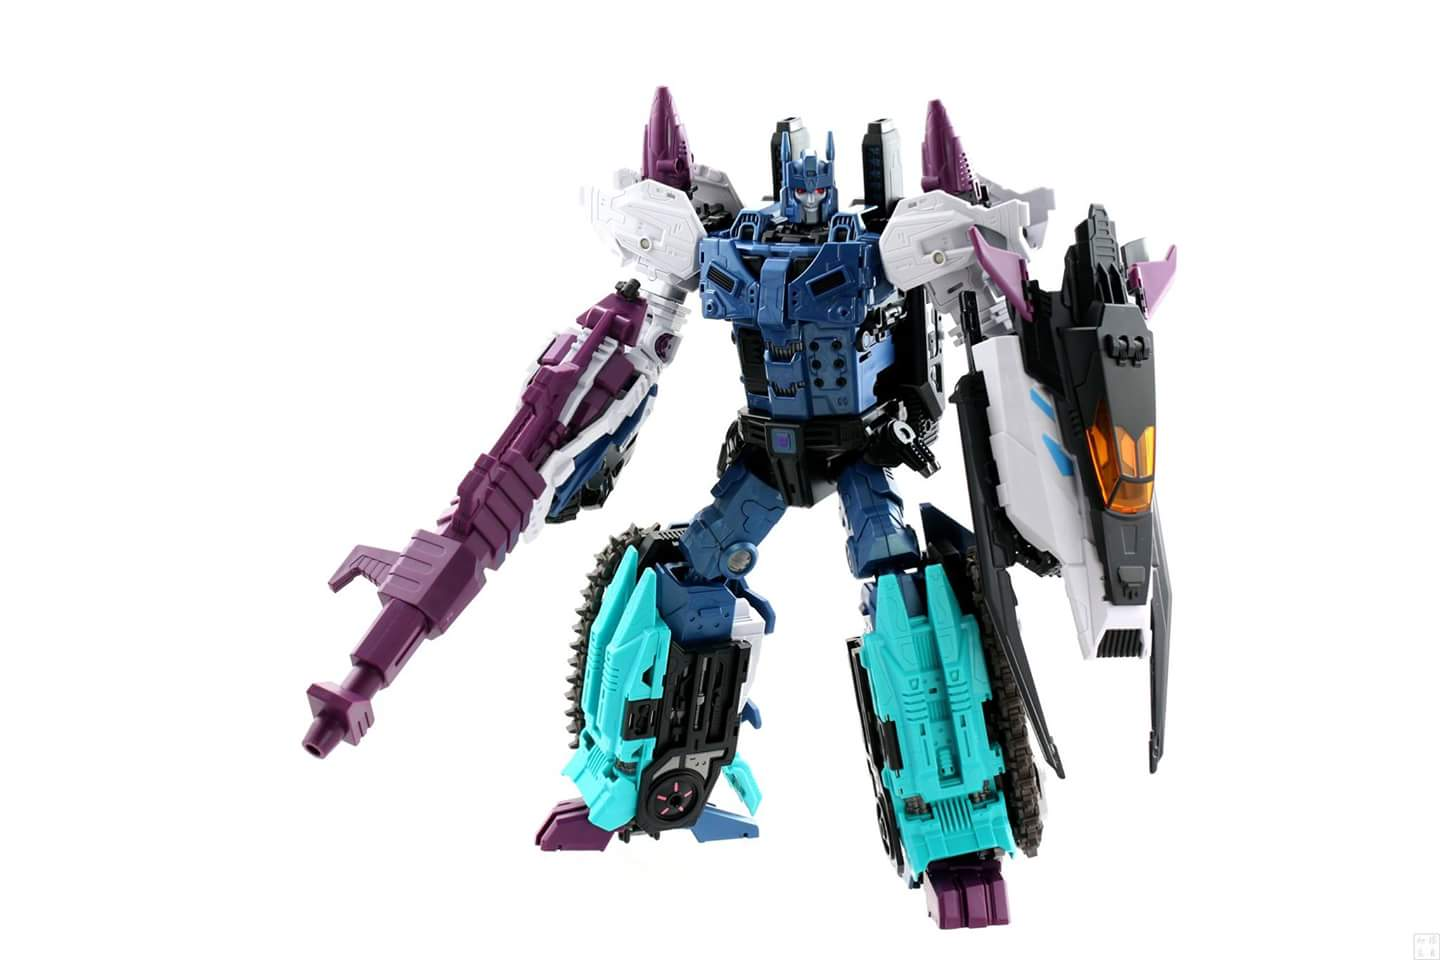 [Mastermind Creations] Produit Tiers - R-17 Carnifex - aka Overlord (TF Masterforce) - Page 3 IdpD4tOs